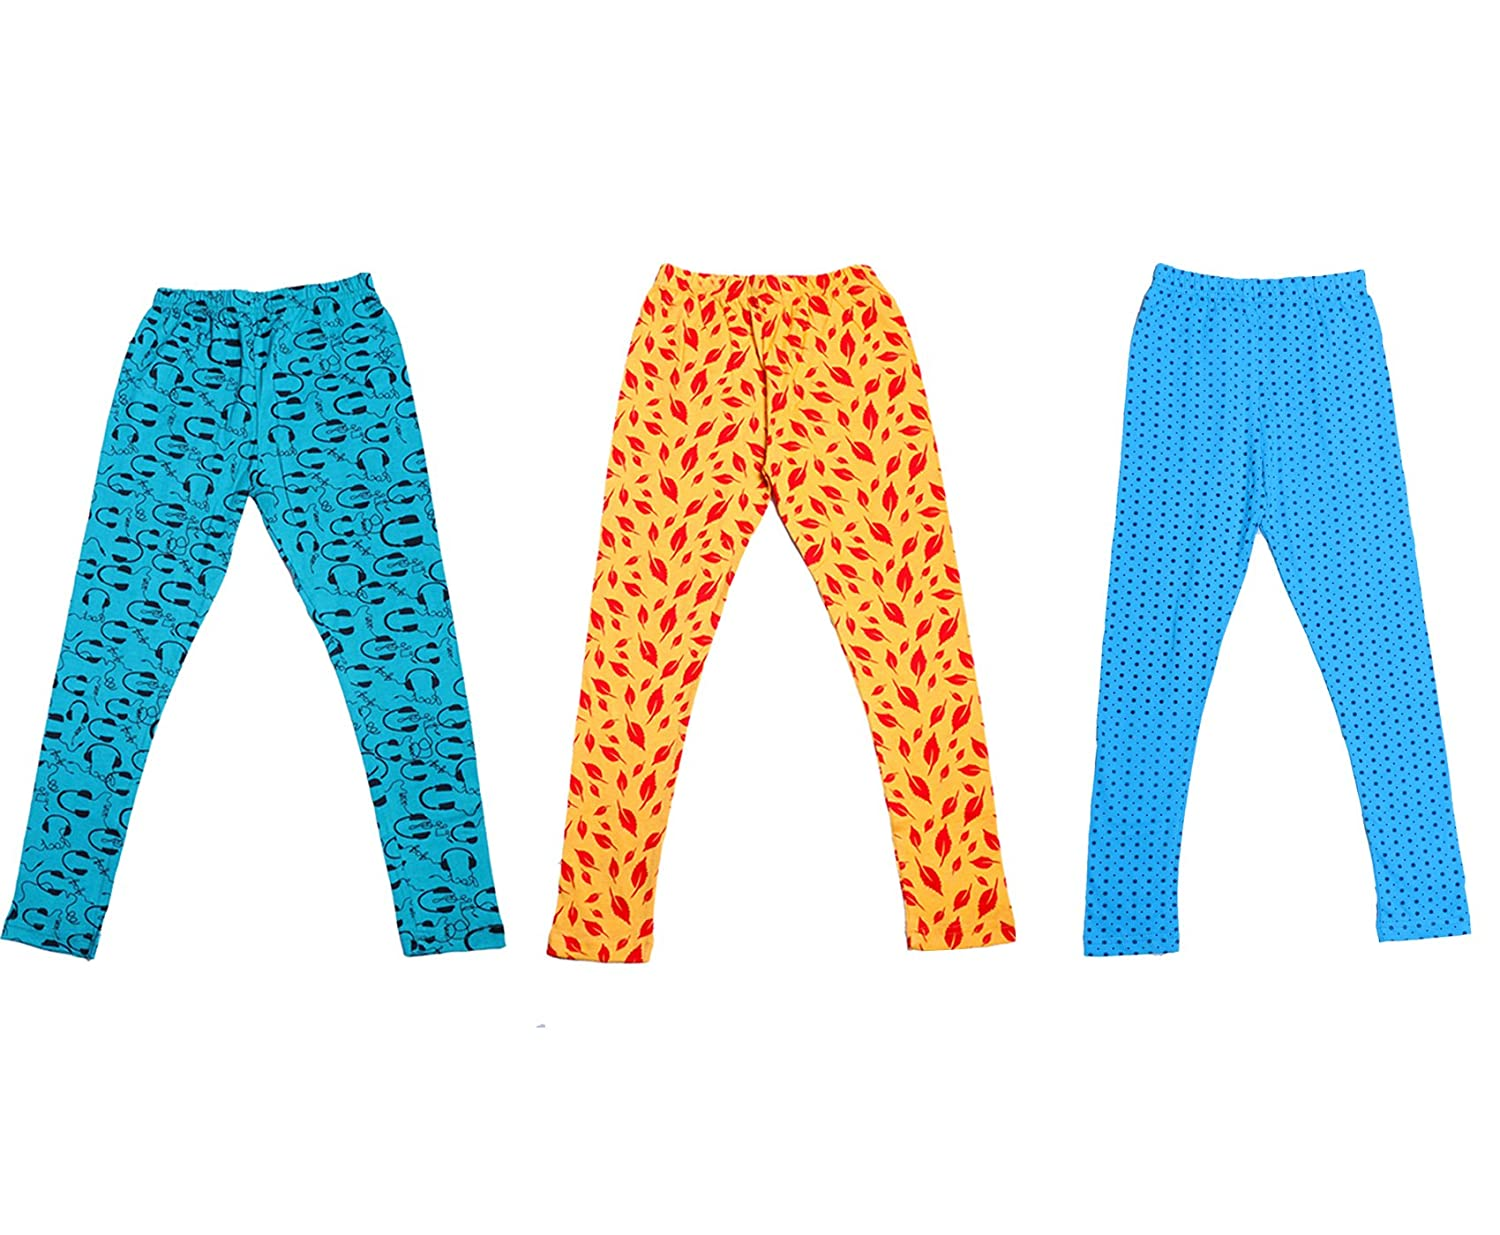 Indistar Girls Super Soft and Stylish Cotton Printed Legging Pack of 5